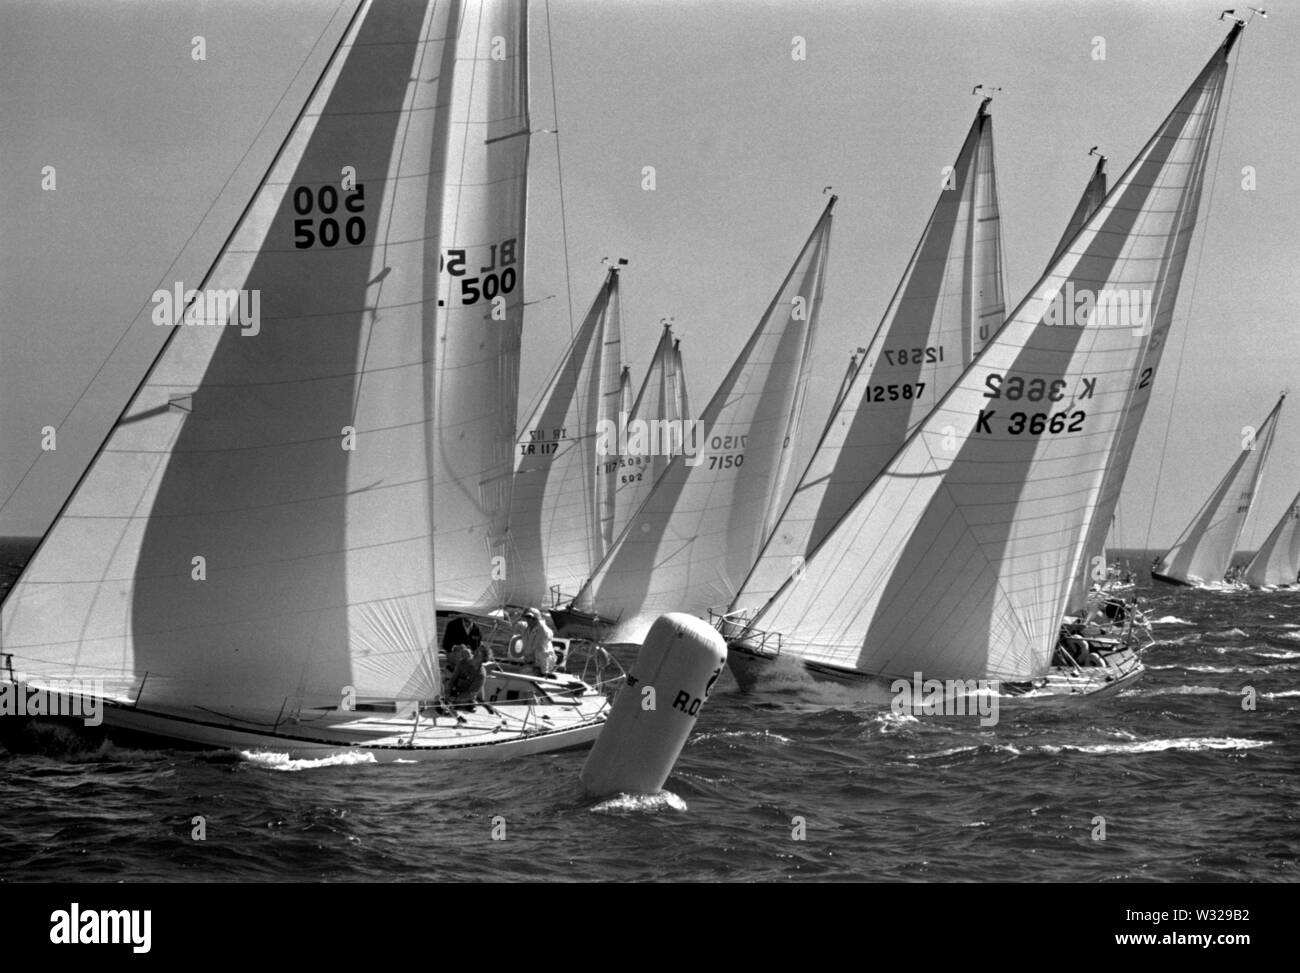 AJAXNETPHOTO. JULY, 1974. TORBAY, ENGLAND. - ONE TON CUP WORLDS - FLEET STARTS 1ST RACE.PHOTO:JONATHAN EASTLAND/AJAX REF:7420718A - Stock Image